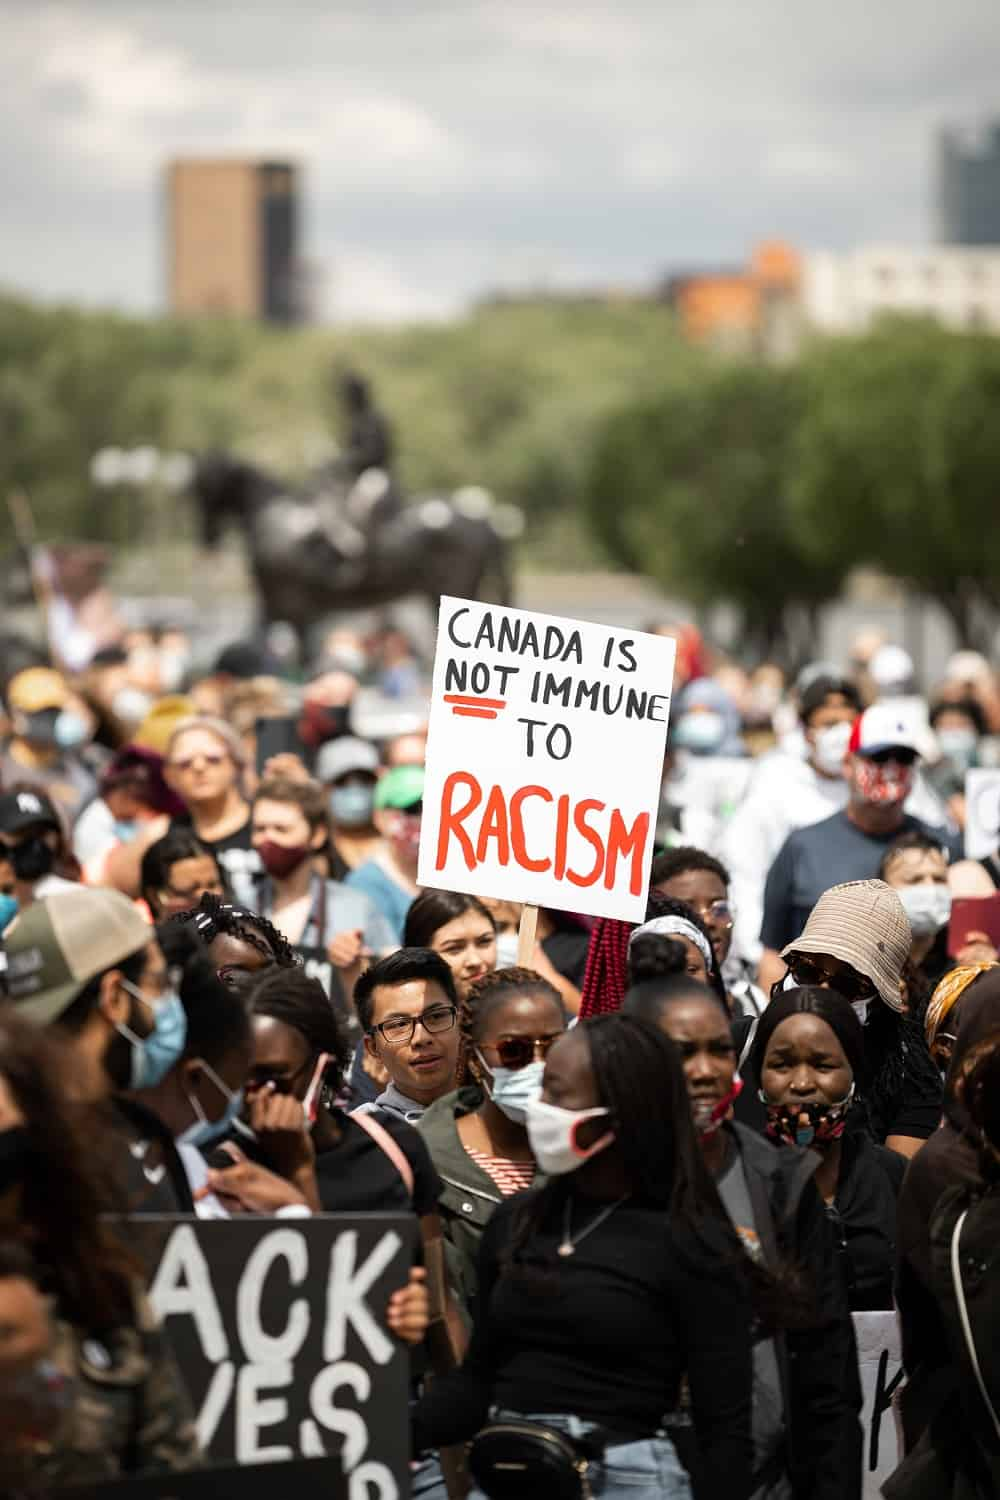 Racism in Canada, how to stop racism in Canada!